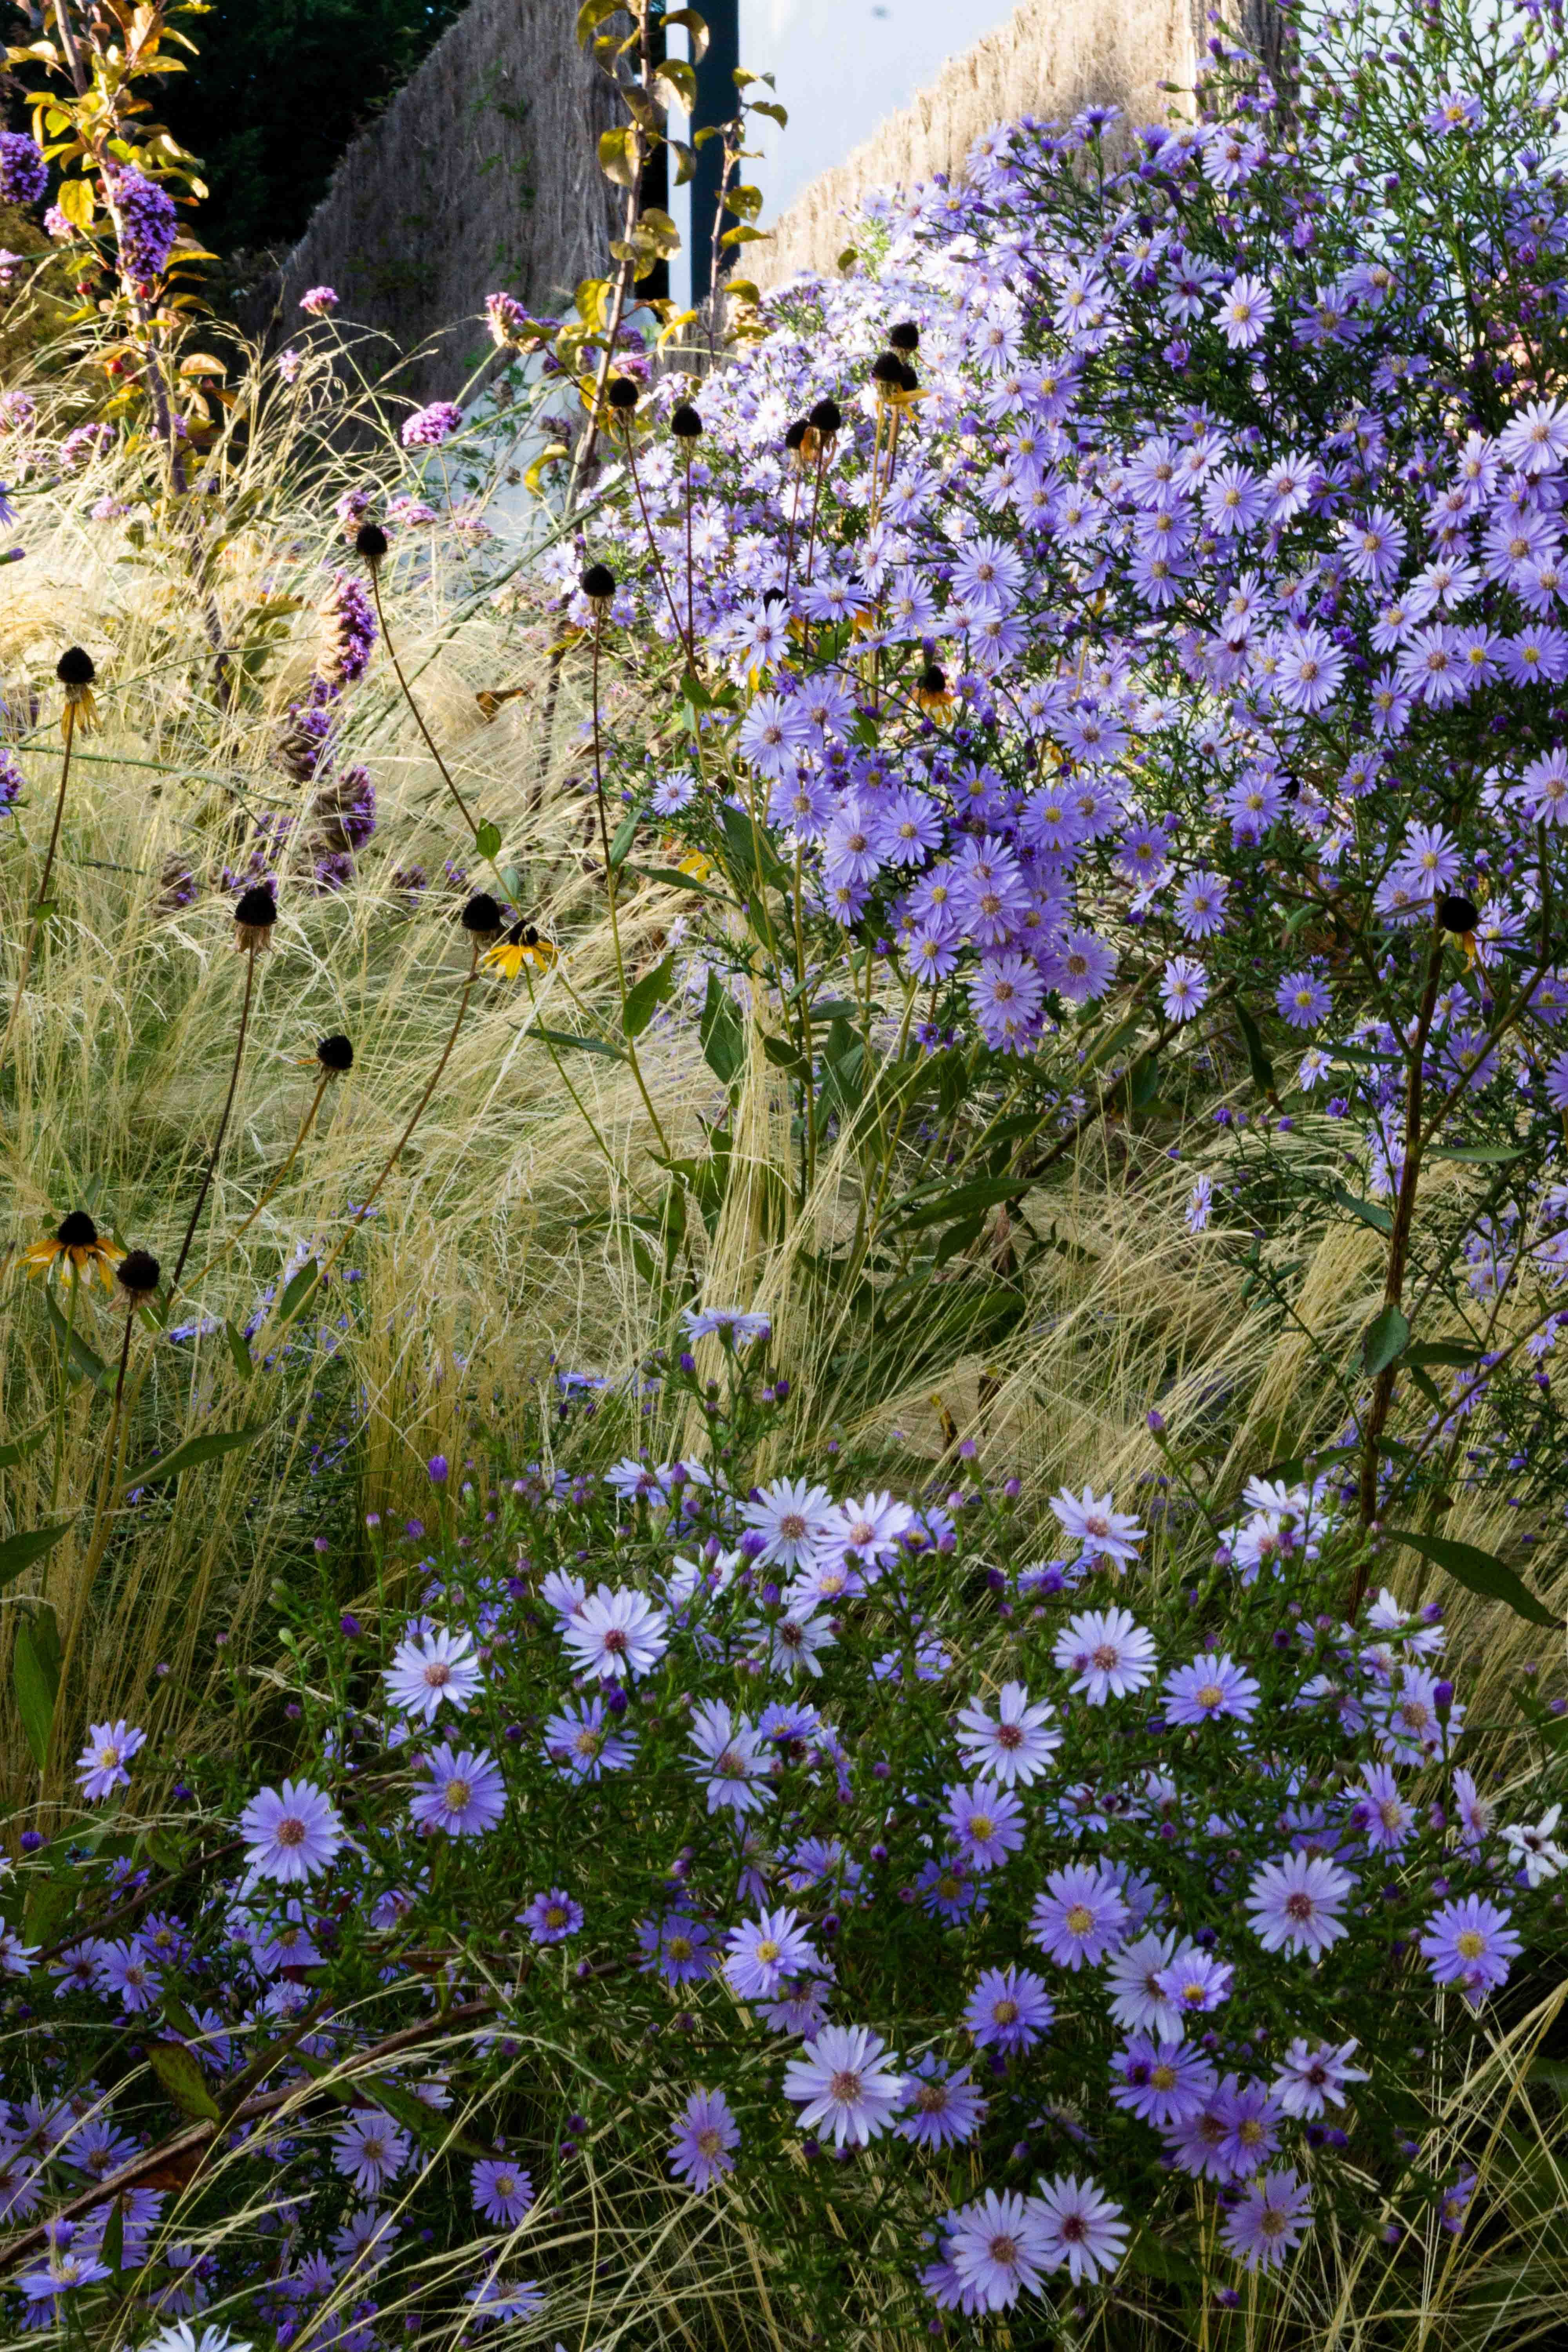 Aster Little Carlow Rudbeckia And Stipa Stipa Is A Genus Of